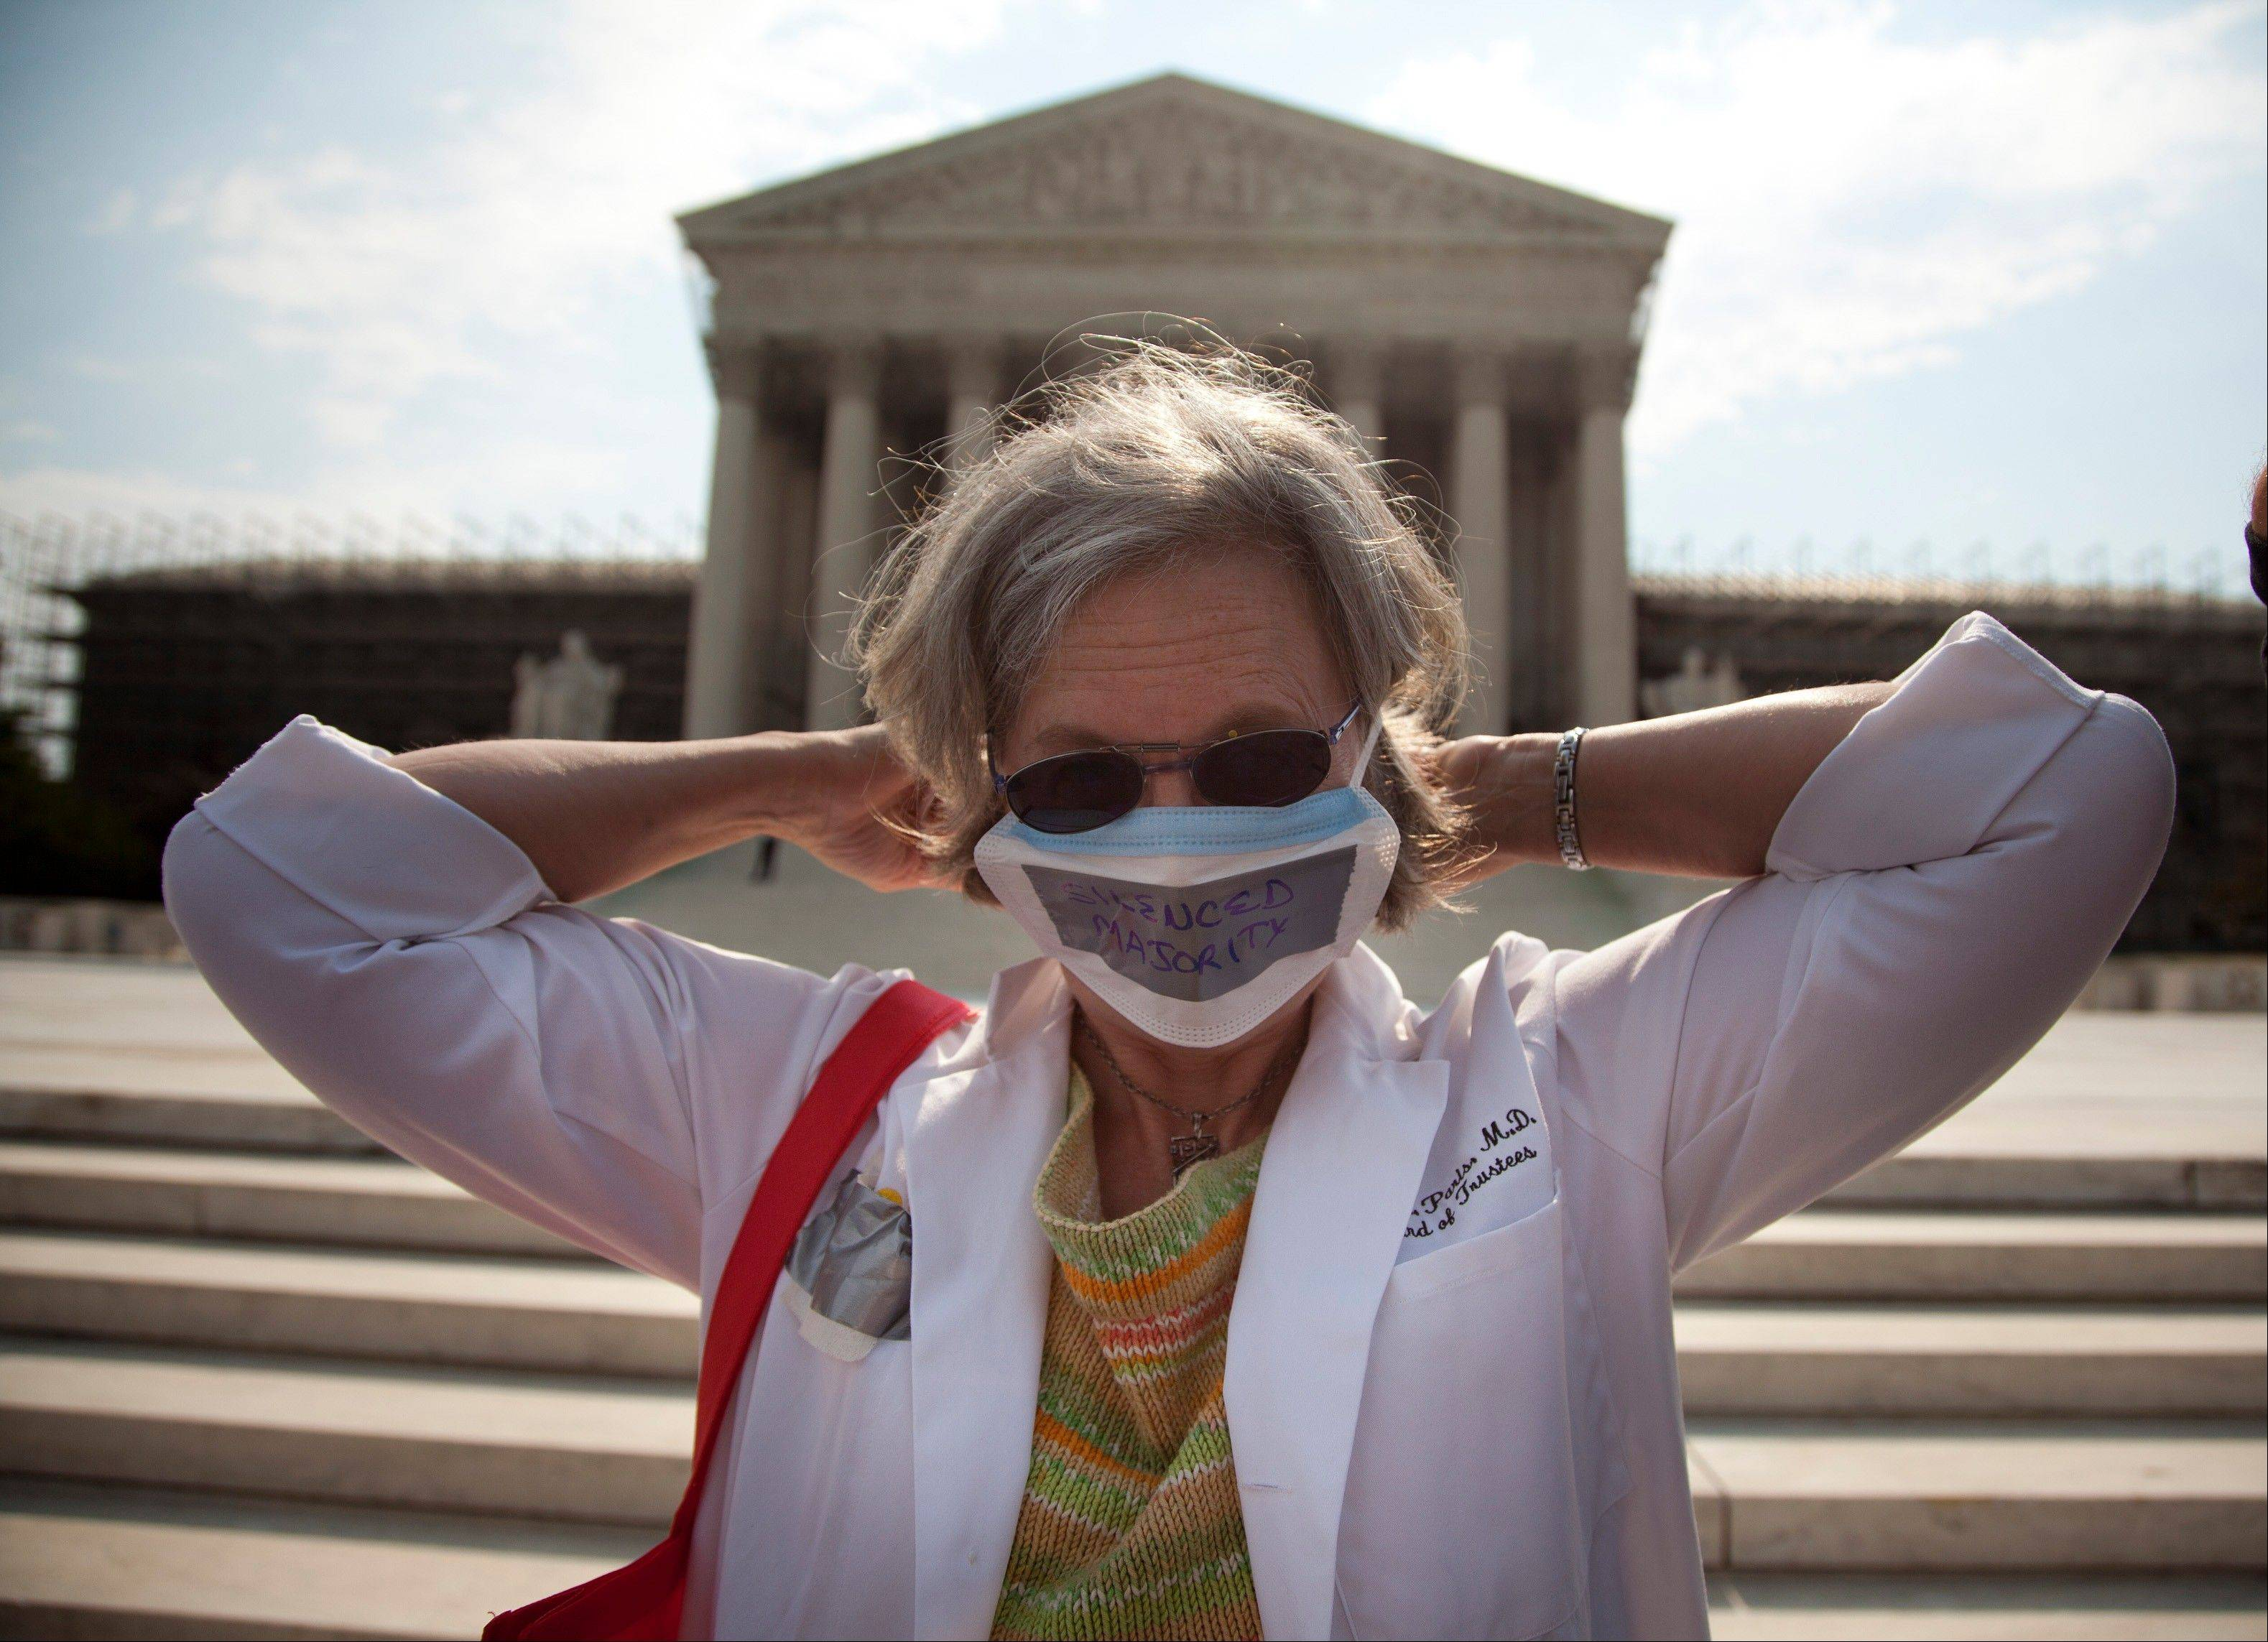 Carol Paris of Leonardtown, Md. demonstrates outside the Supreme Court in Washington. On Thursday the Supreme Court will deliver their ruling on President Barack Obama's health care package.